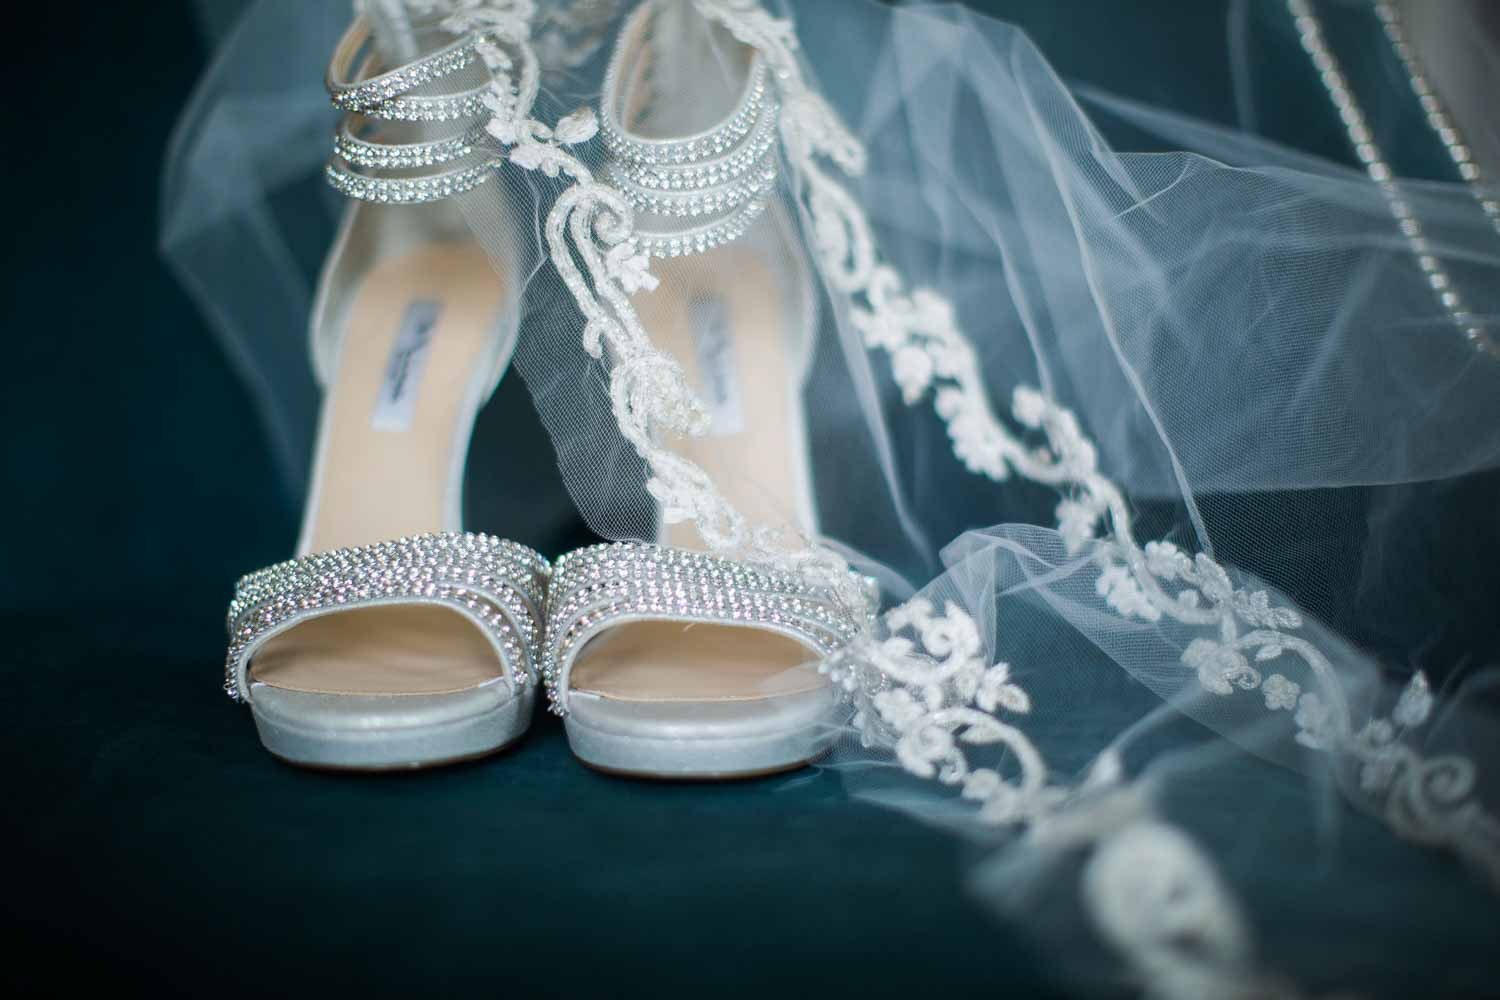 rhinestone bridal shoes next to wedding veil